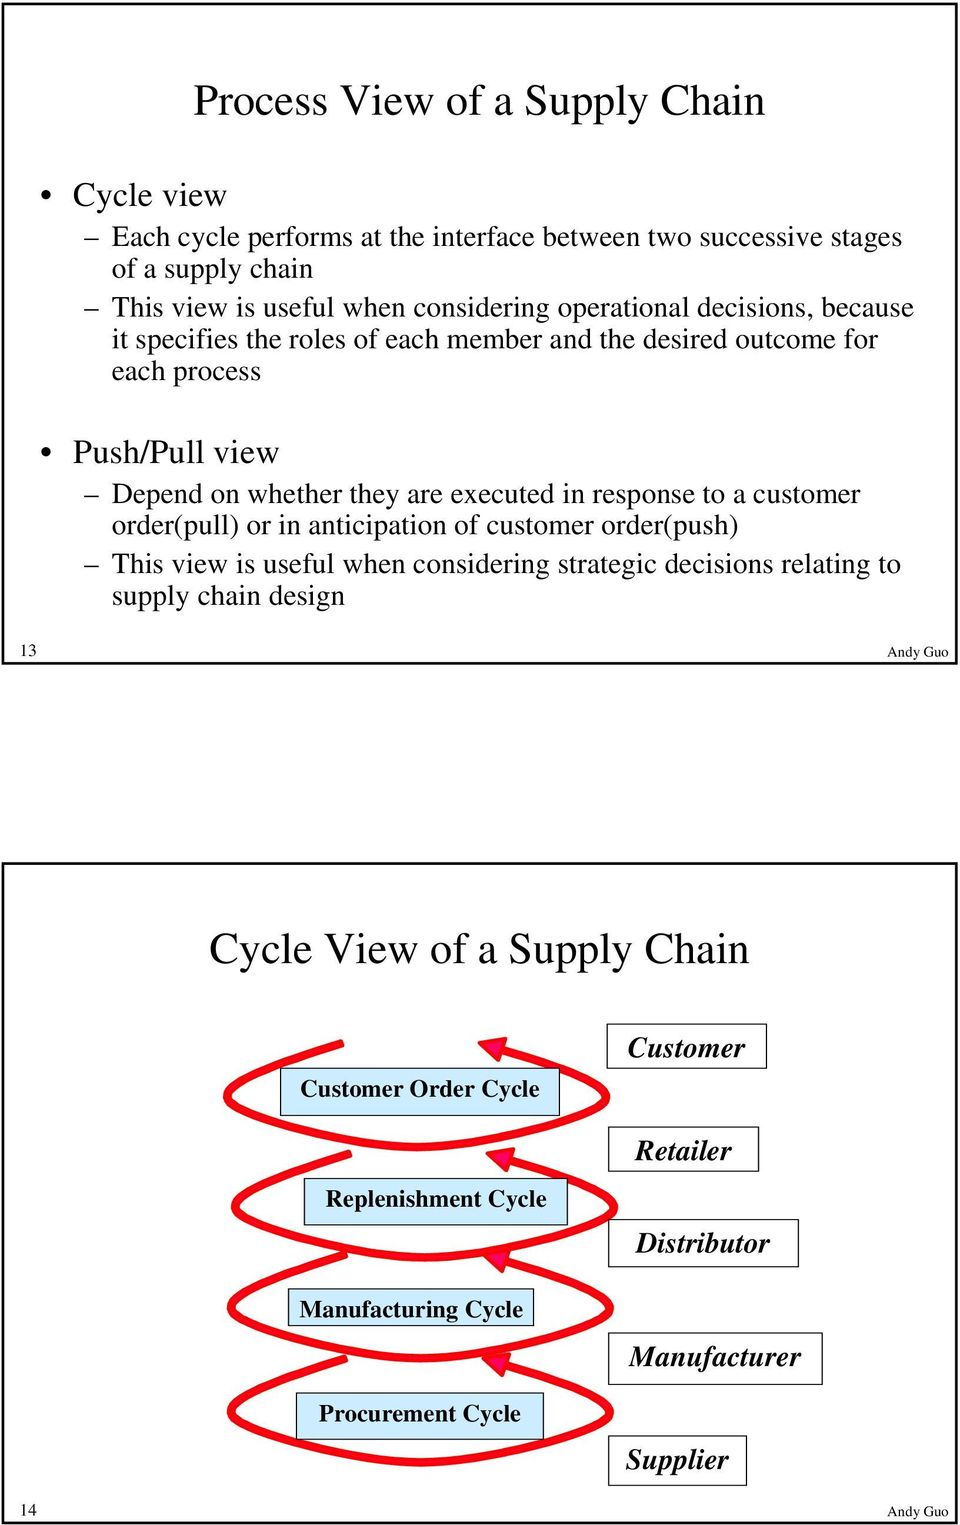 response to a customer order(pull) or in anticipation of customer order(push) This view is useful when considering strategic decisions relating to supply chain design 13